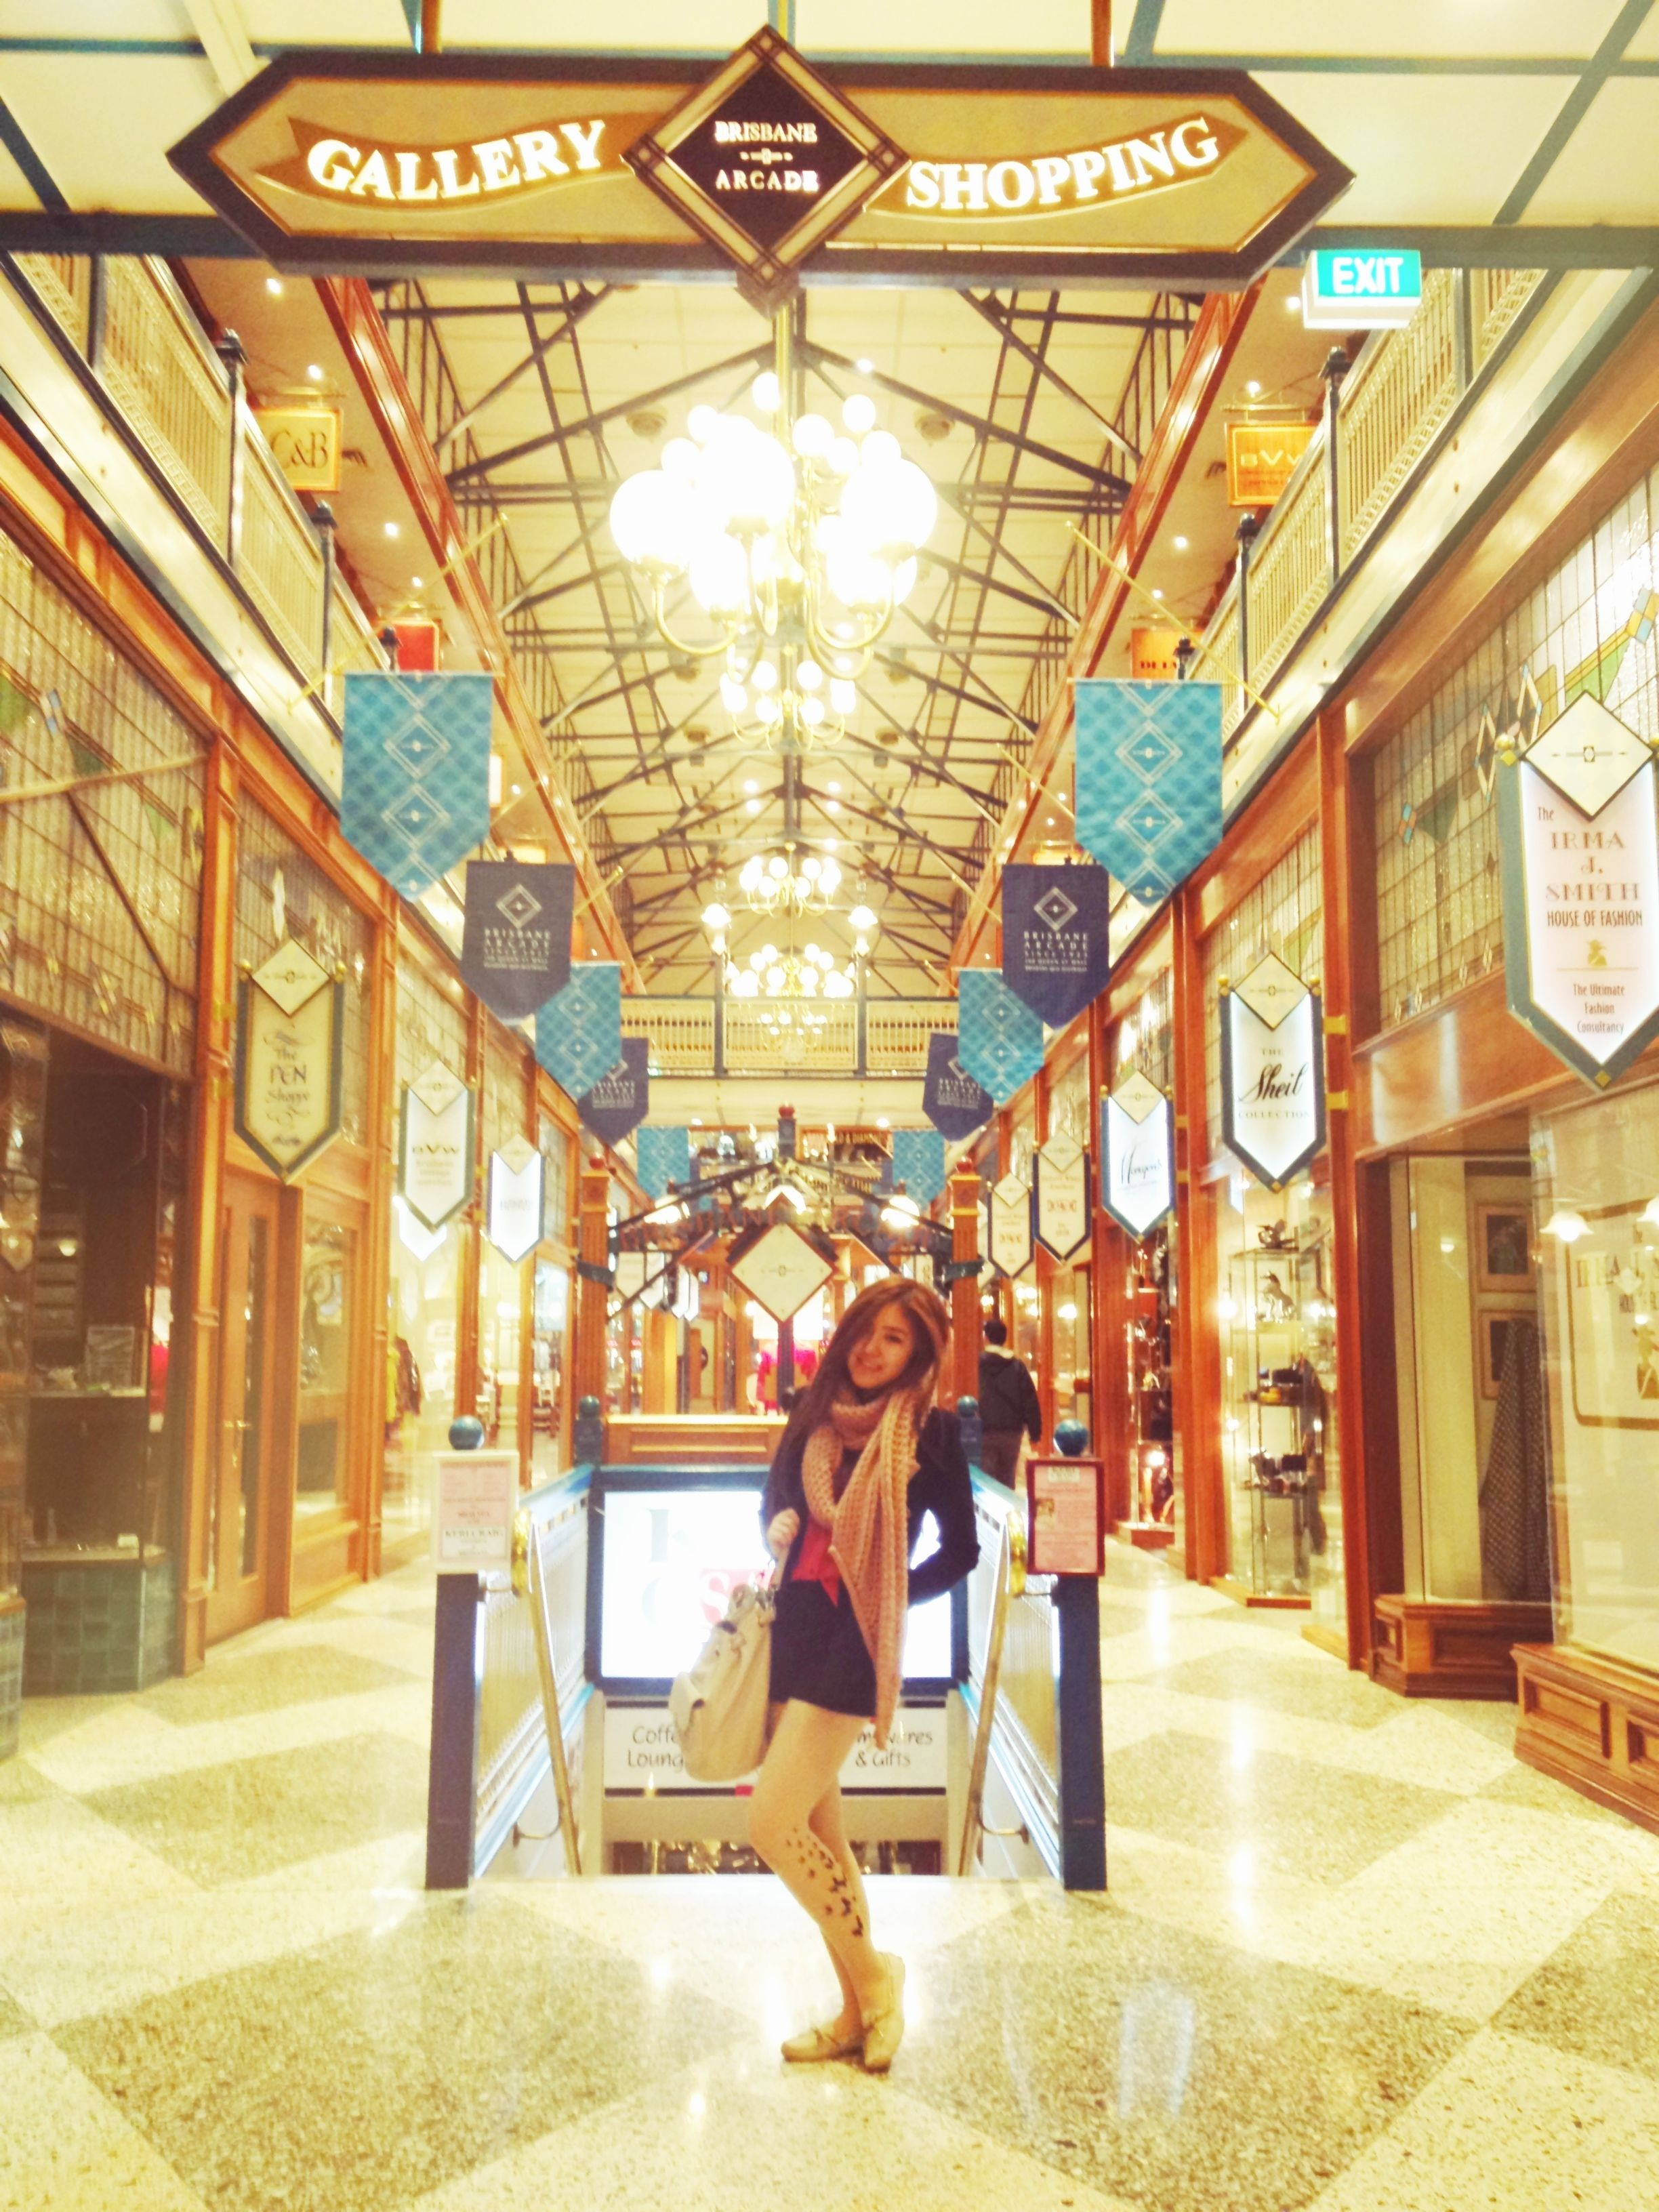 In brisbane arcade ! A bright and luxurious looking place!